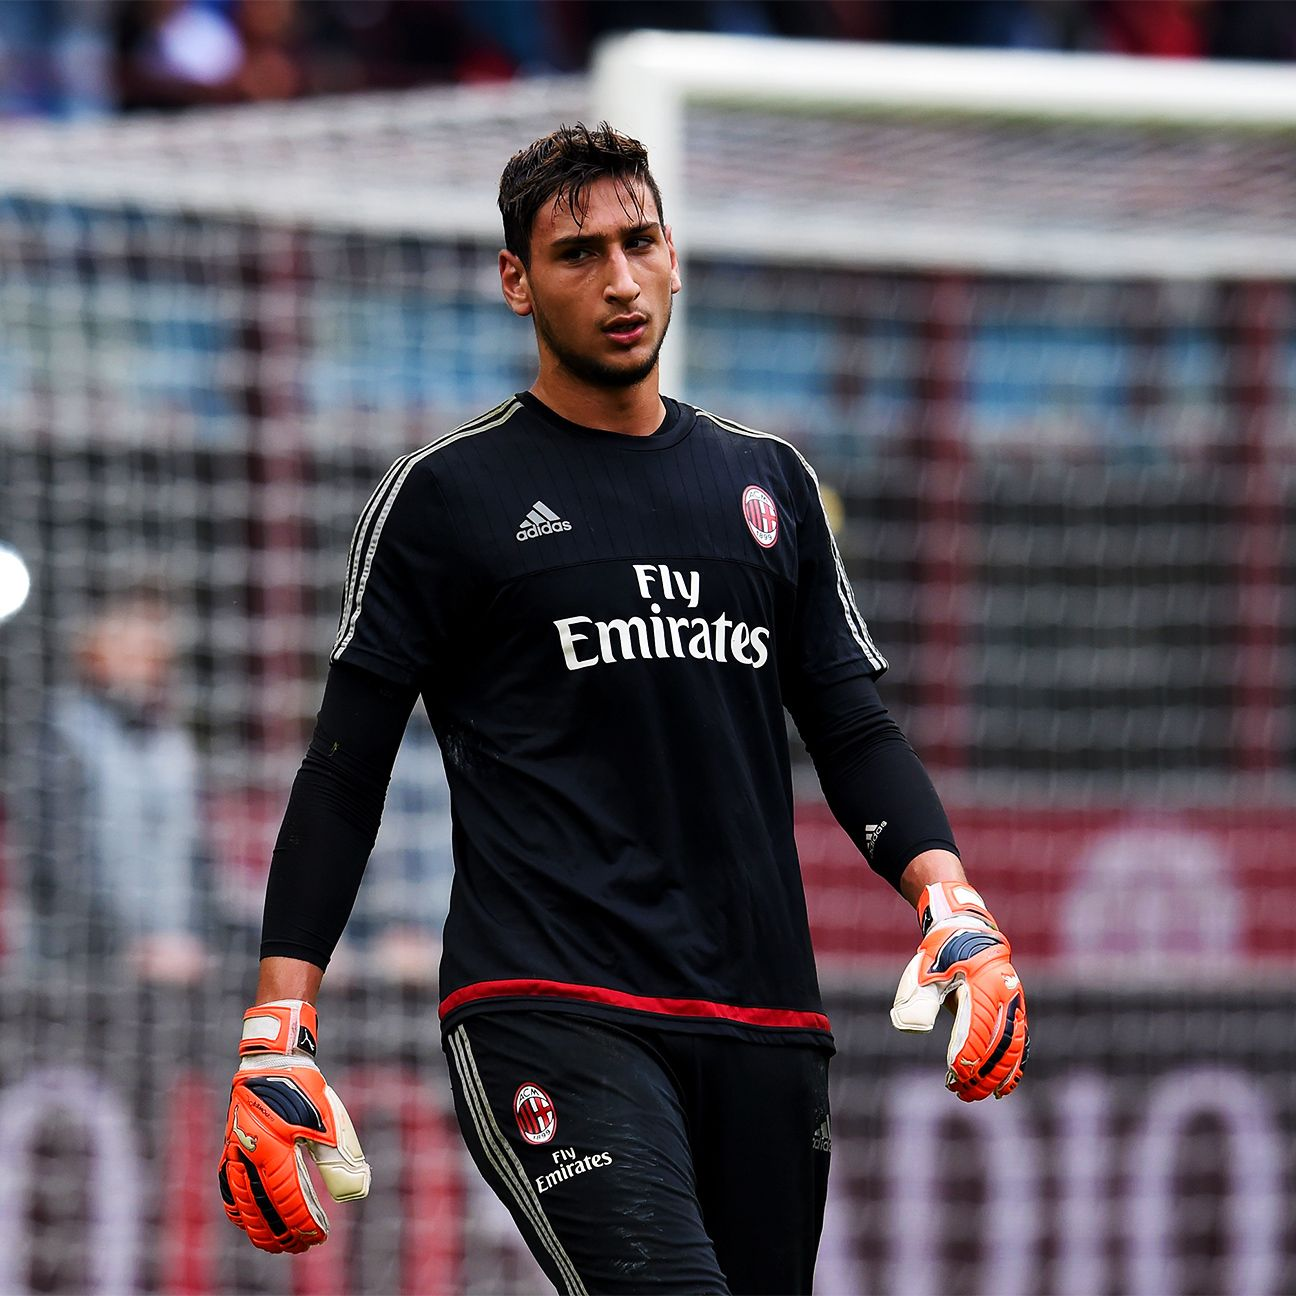 Gianluigi Donnarumma enjoyed a successful Serie A debut as Milan's No. 1.